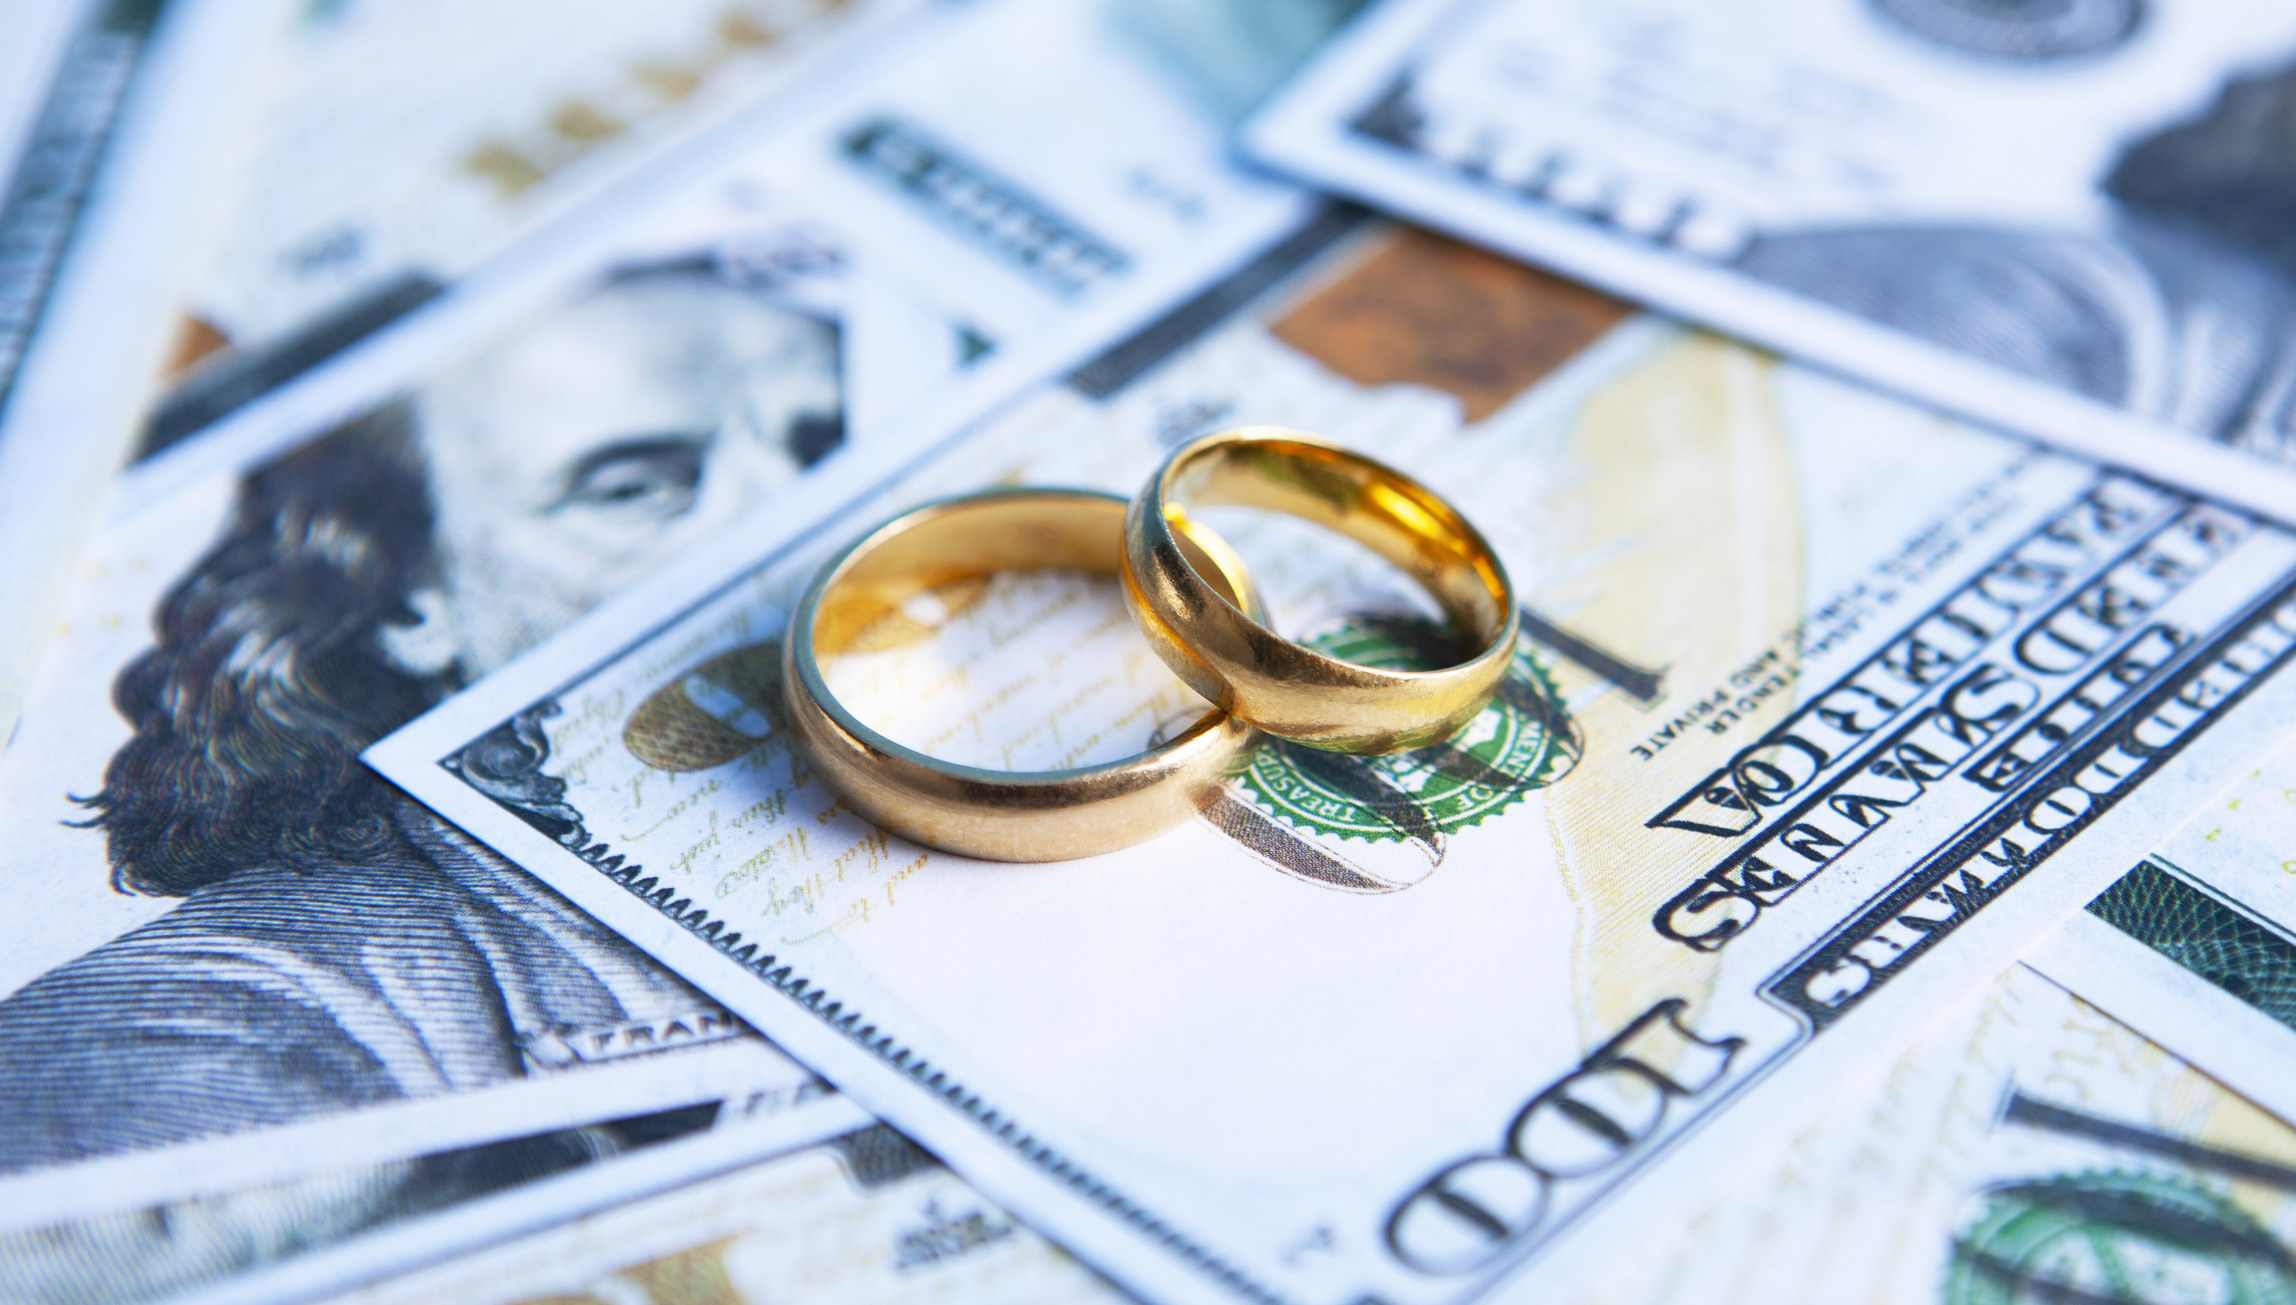 Two wedding bands on a pile of 100 dollar bills